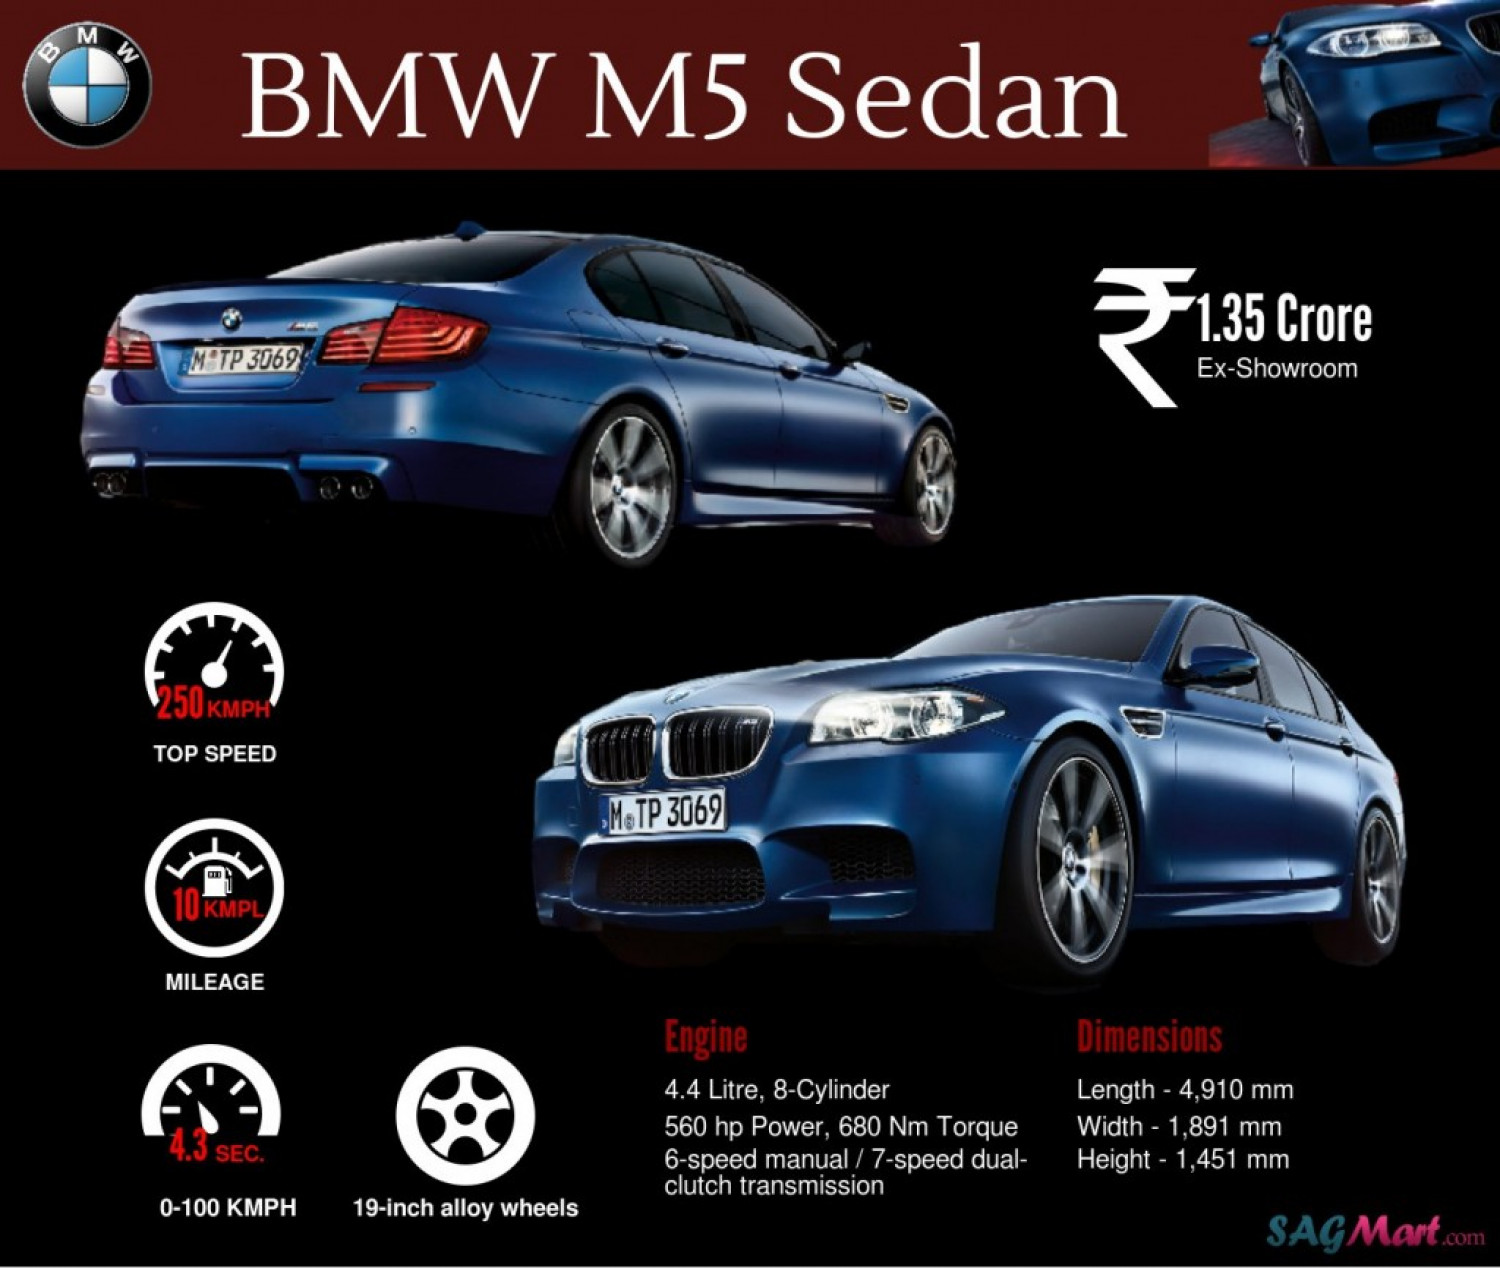 BMW M5 Sedan Specifications And Price Infographic